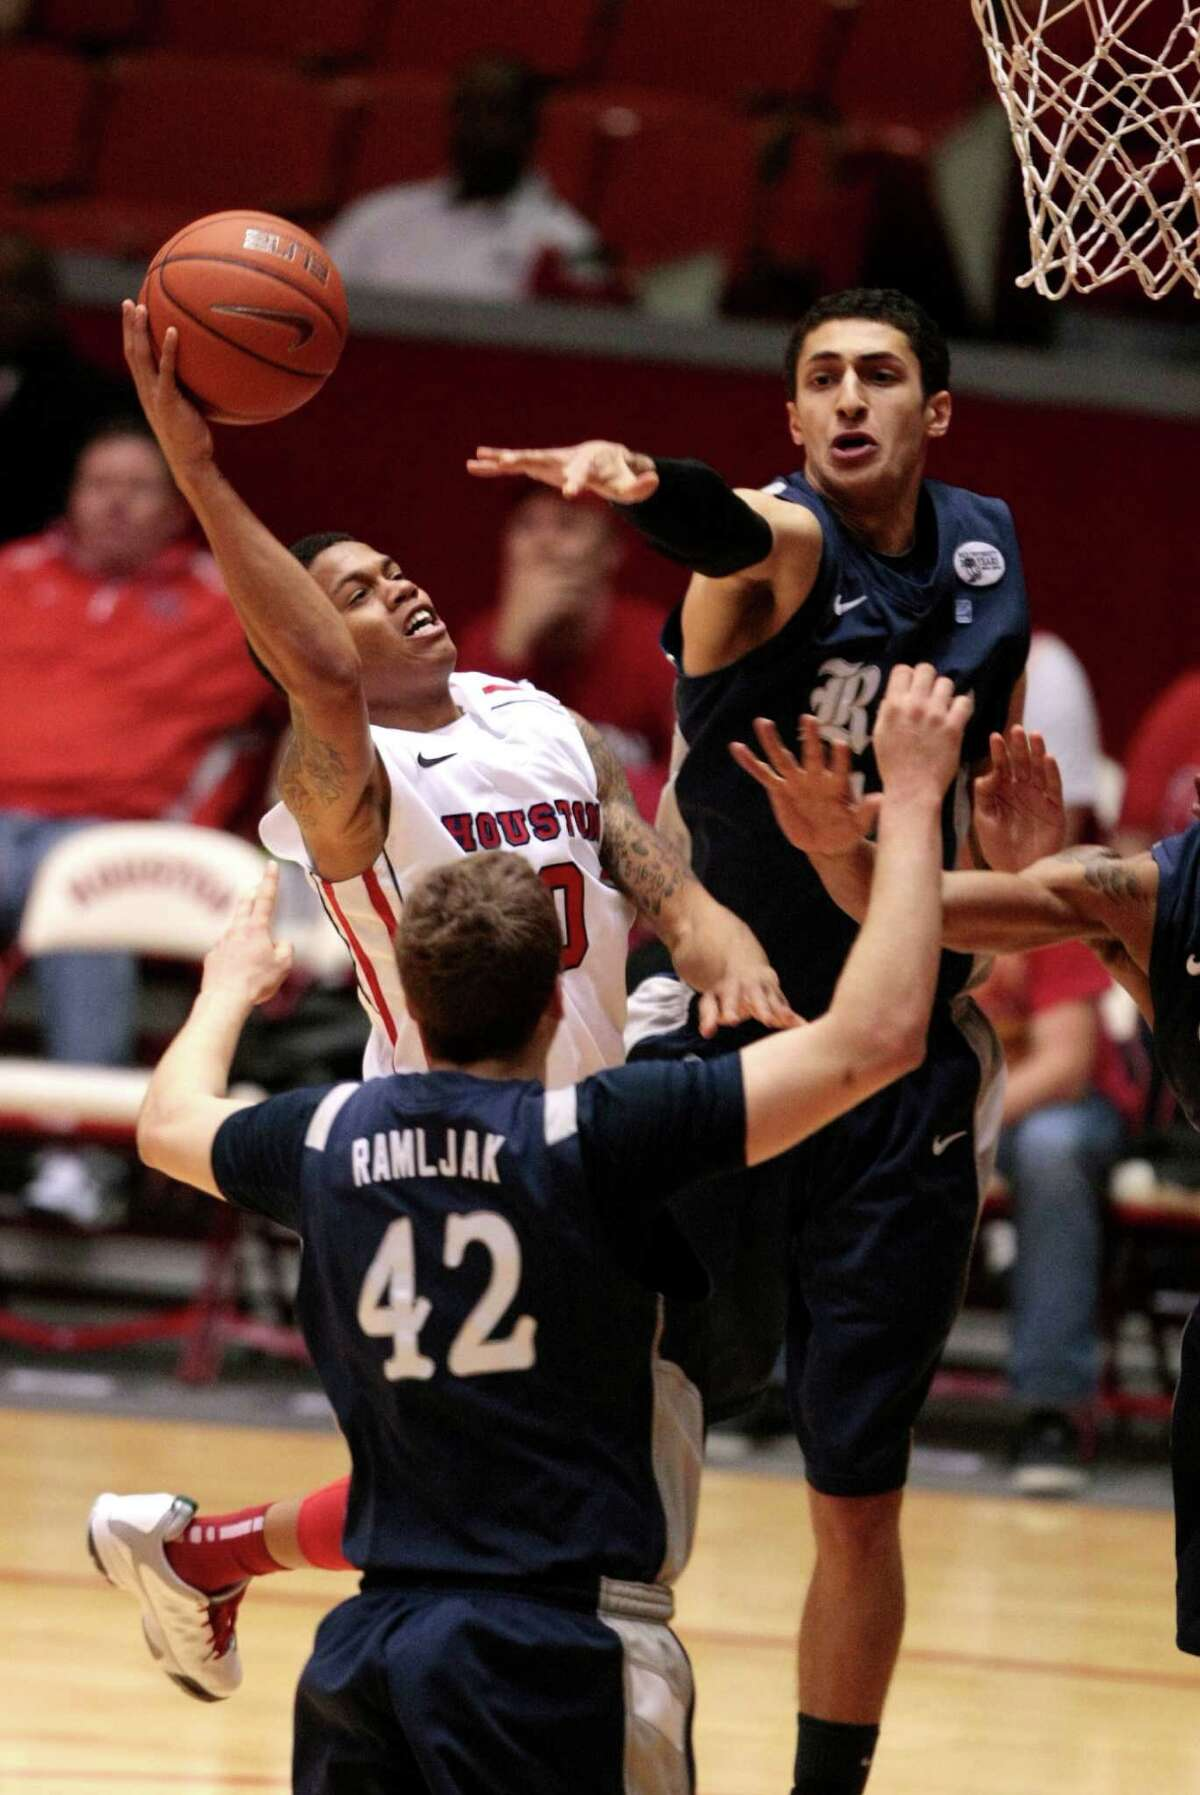 Guard Joseph Young, who led UH with 20 points, splits Rice's Austin Ramljak, left, and Bahrom Firozgary to get to the basket.